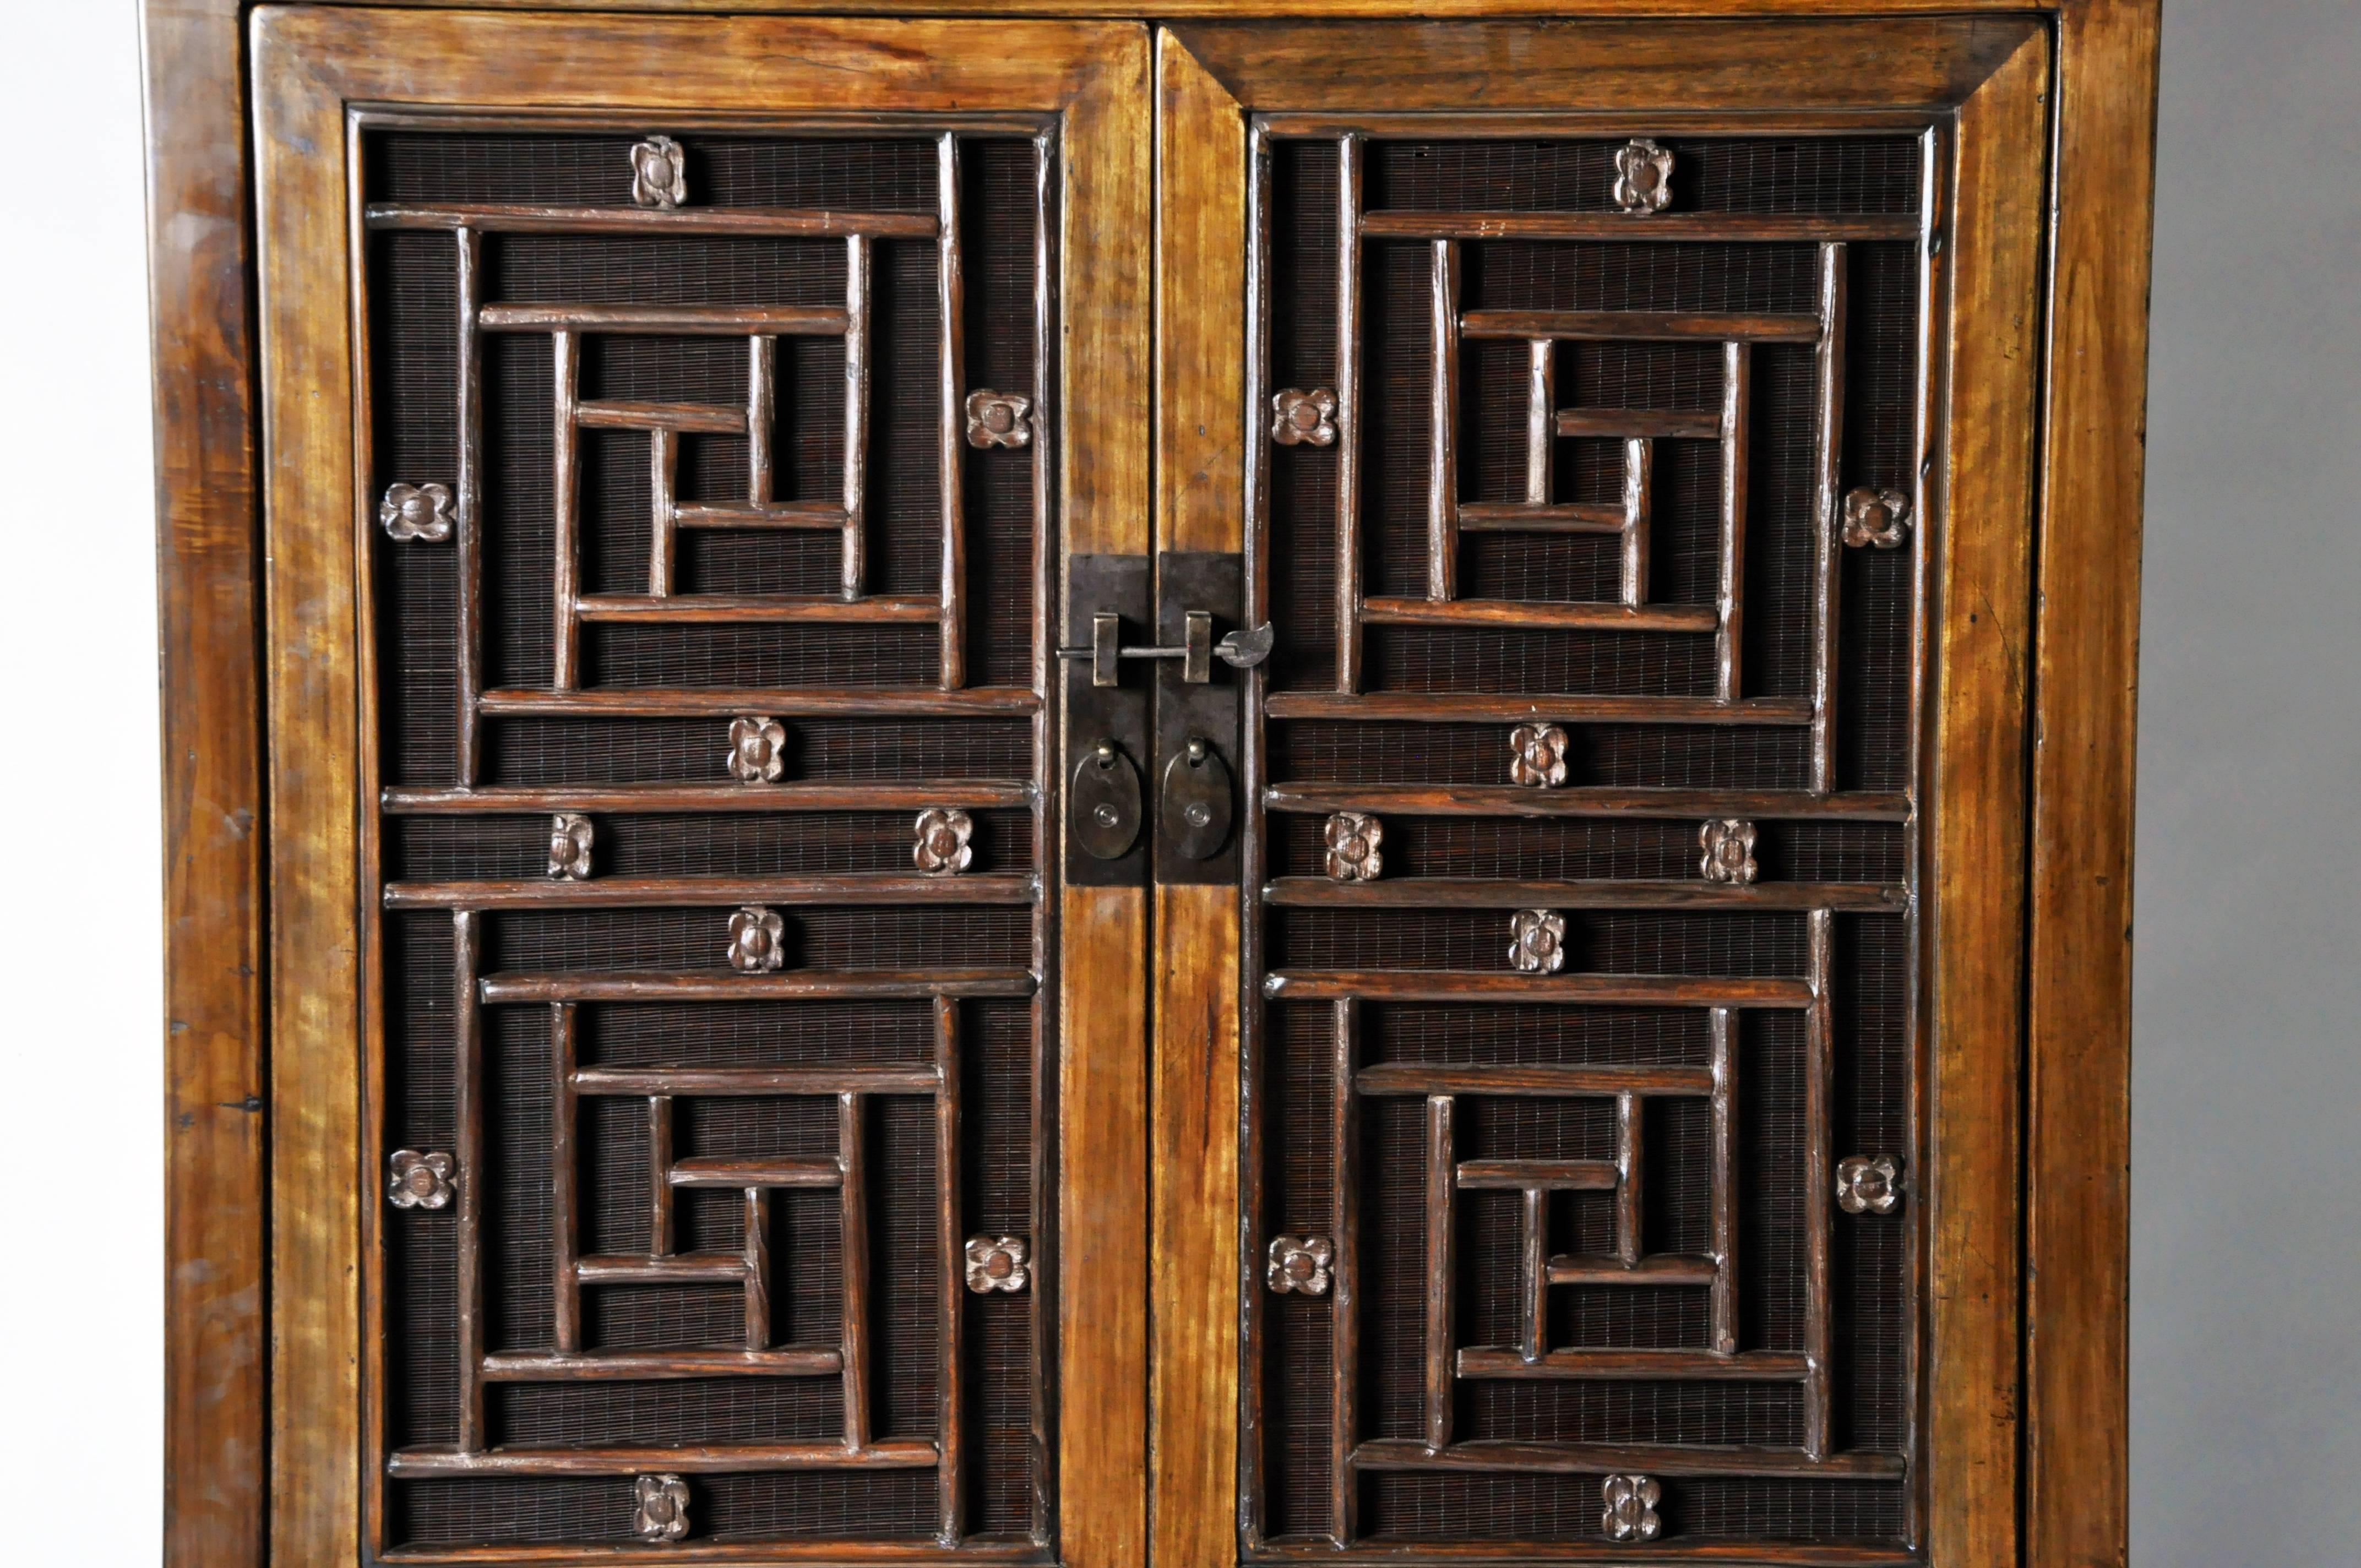 & Tall Chinese Lattice Door Cabinet with Restoration at 1stdibs